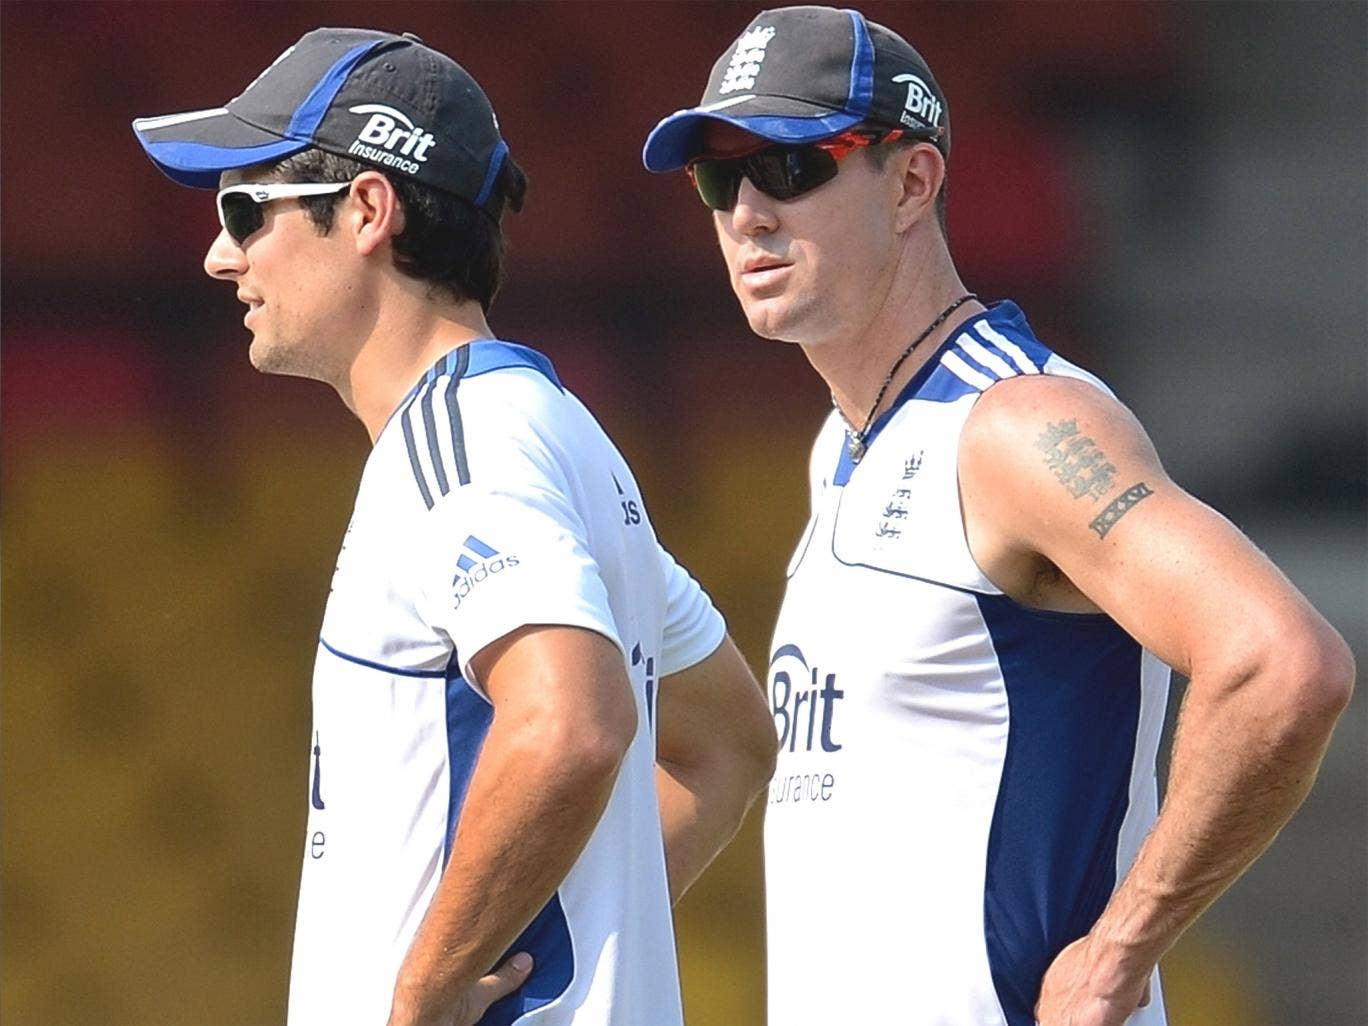 Alastair Cook (left), and Kevin Pietersen, who had become an isolated figure during the Ashes tour